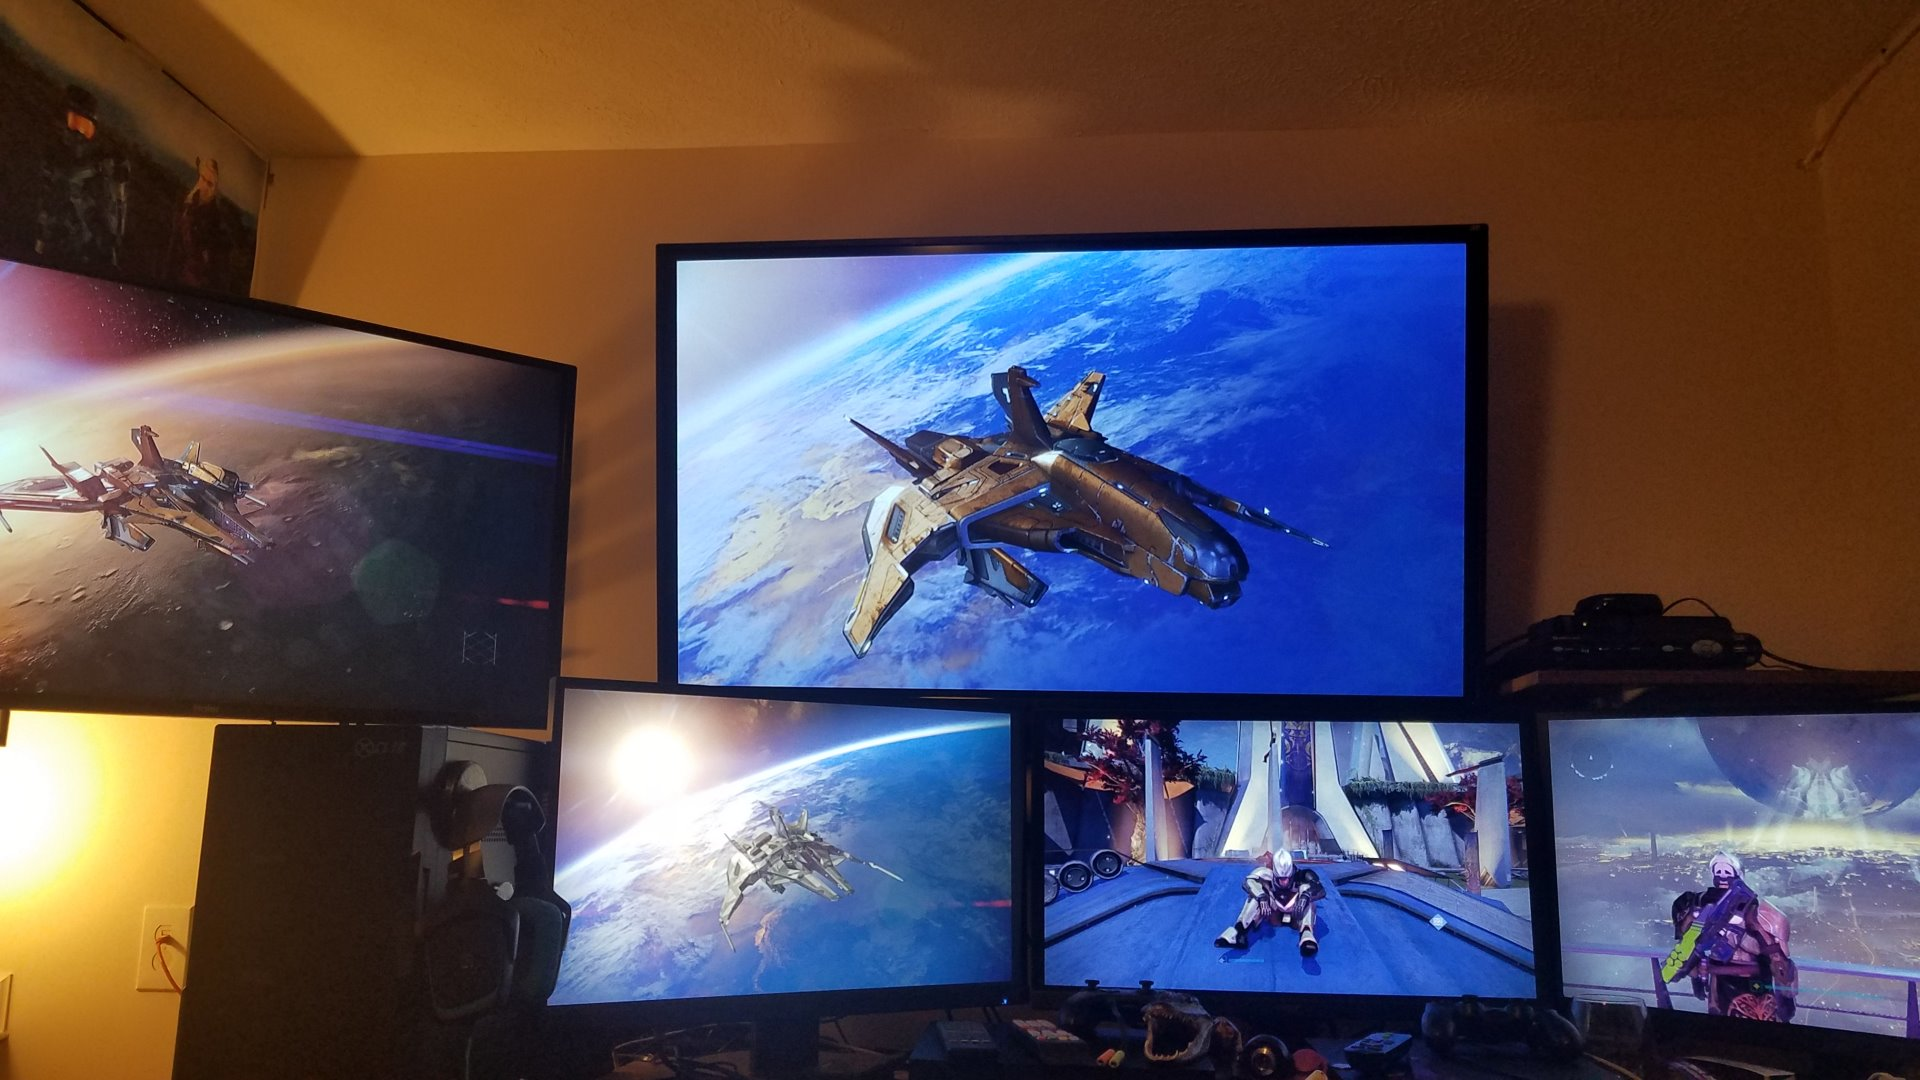 NewSetup-WallMount-5-Screens.jpg